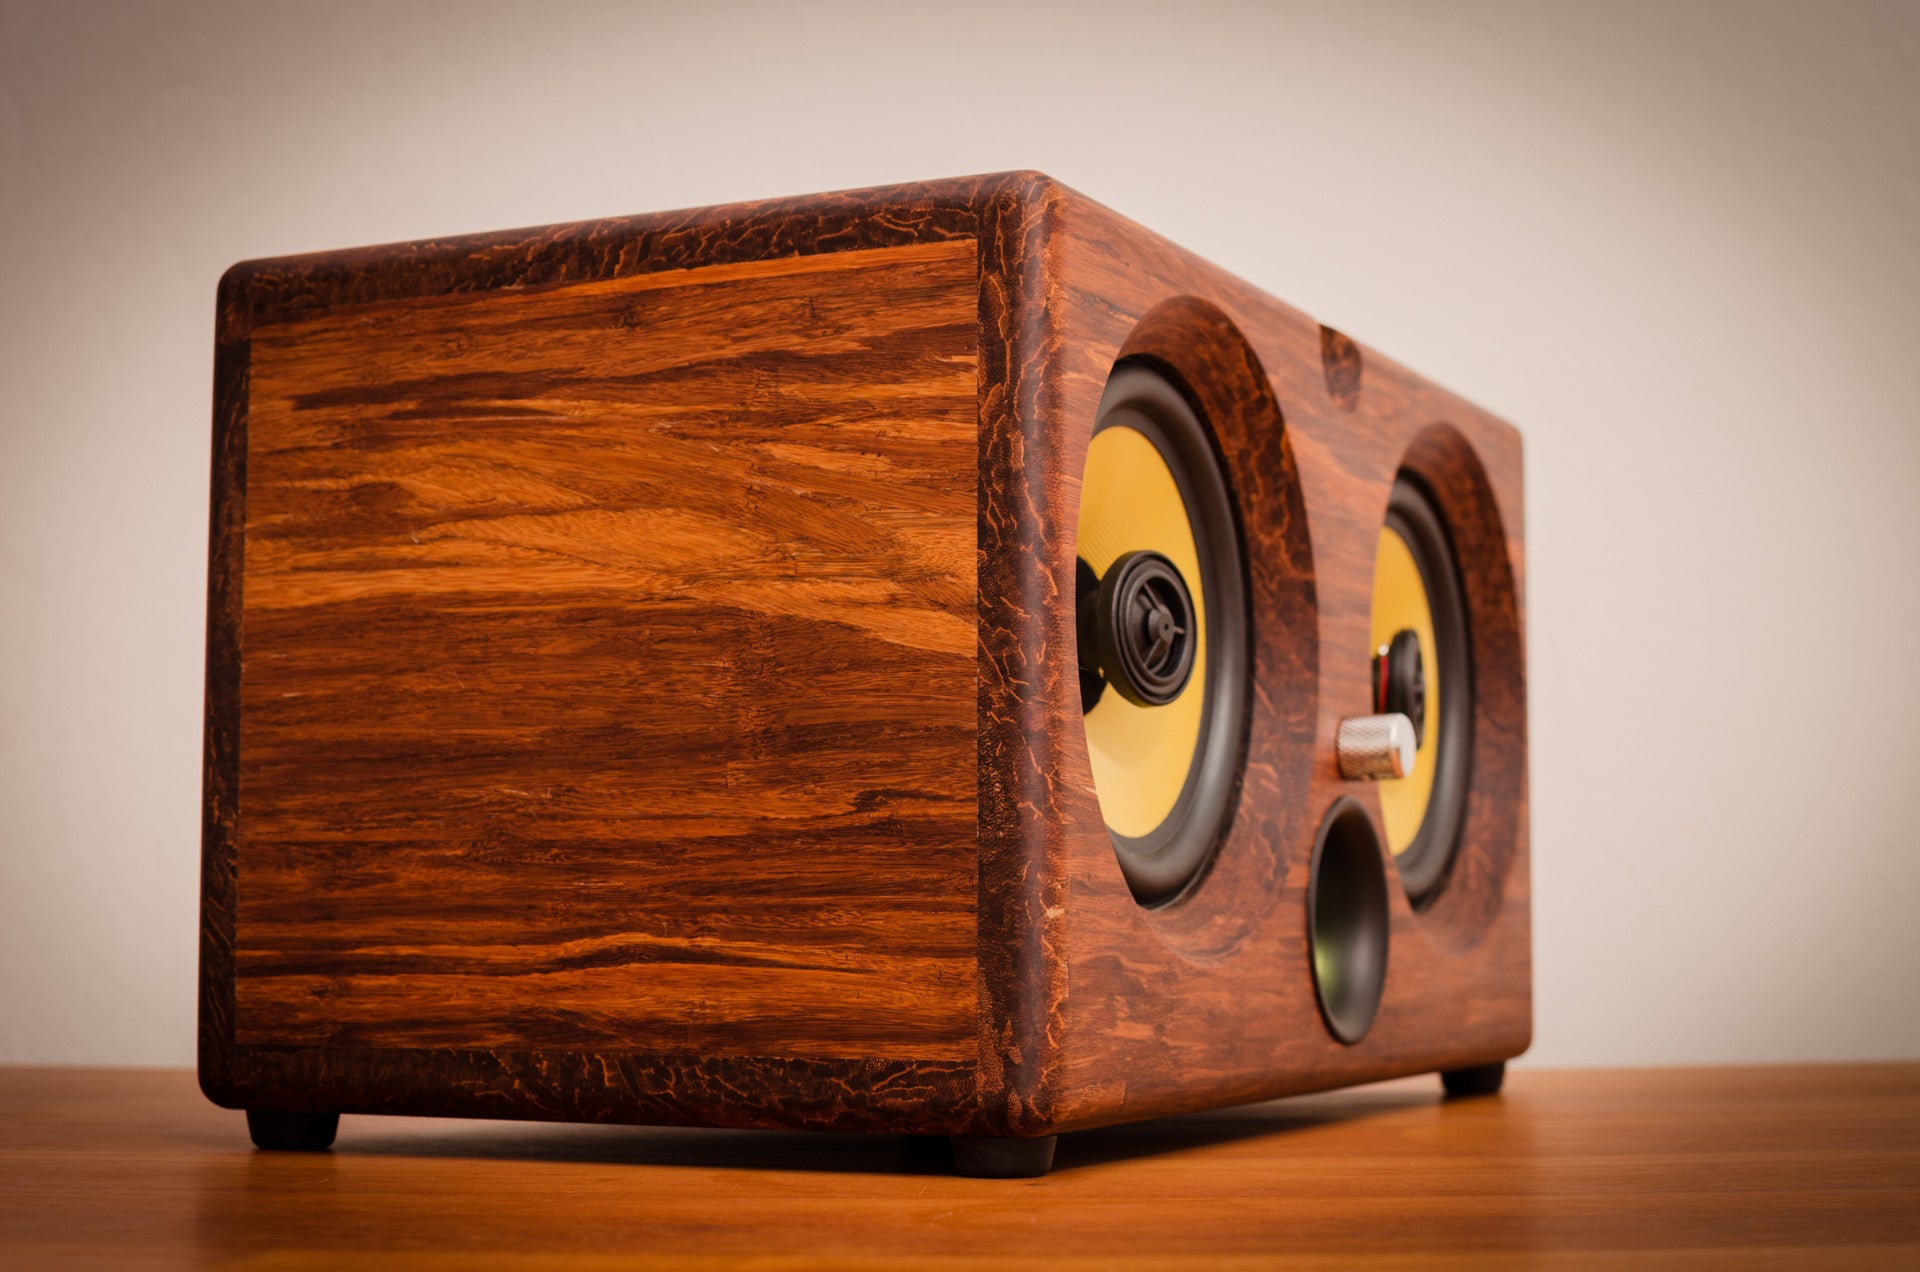 Best airplay speaker 2015 review wifi bluetooth speakers aptx new latest ultimate coolest speakers available wood solid woods wooden vintage hipster audiophile tk2050 sta508 sta516 tripath amplifier guitar amplifier HD sound music high resolution Thodio